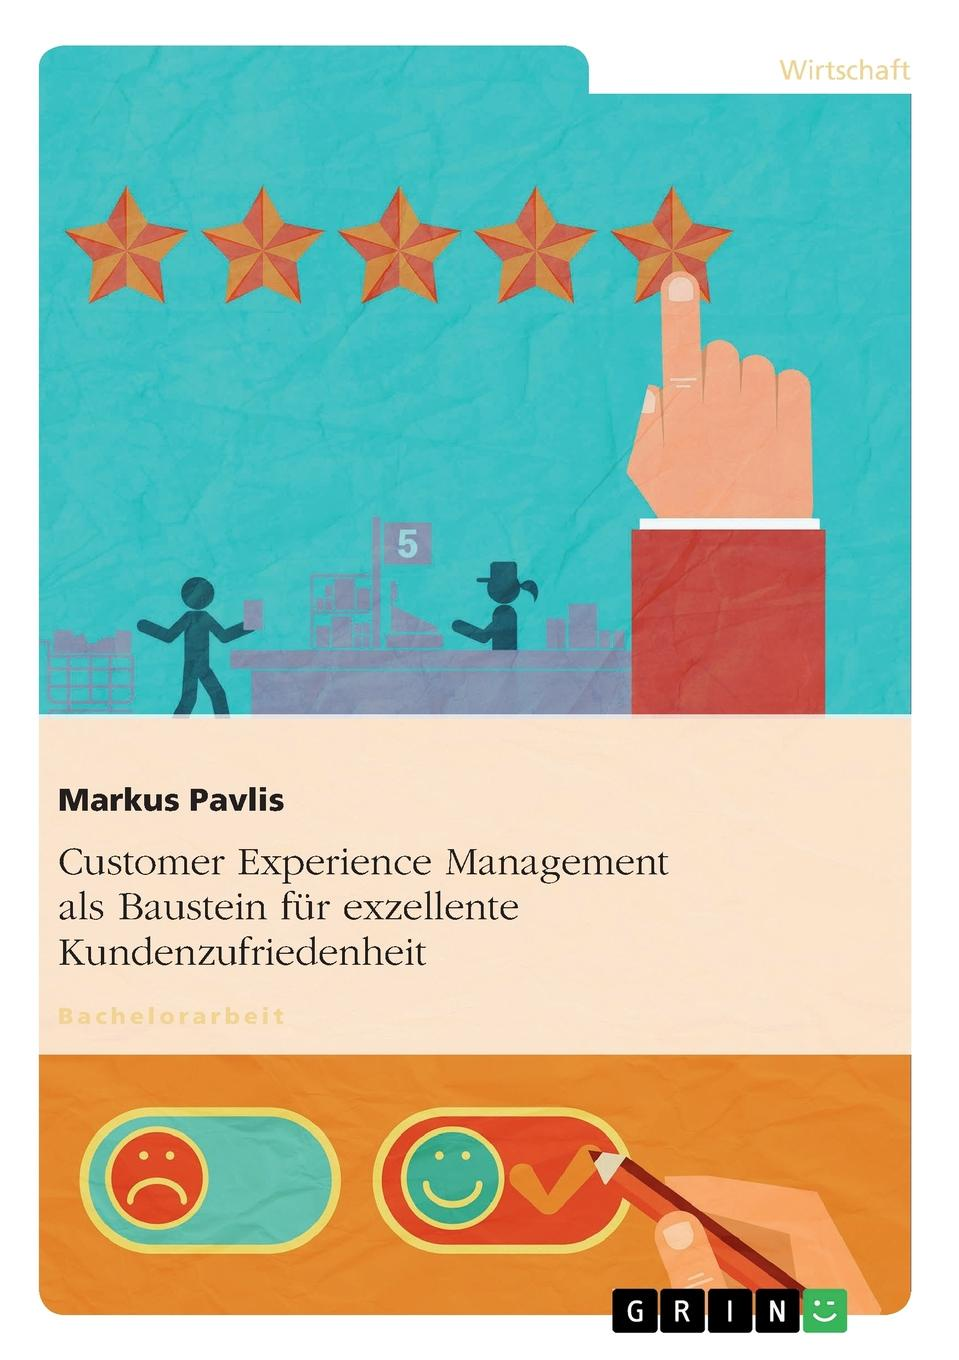 Markus Pavlis Customer Experience Management als Baustein fur exzellente Kundenzufriedenheit aga kamilla it fur kunden qualitatsmanagement bei customer relationship management